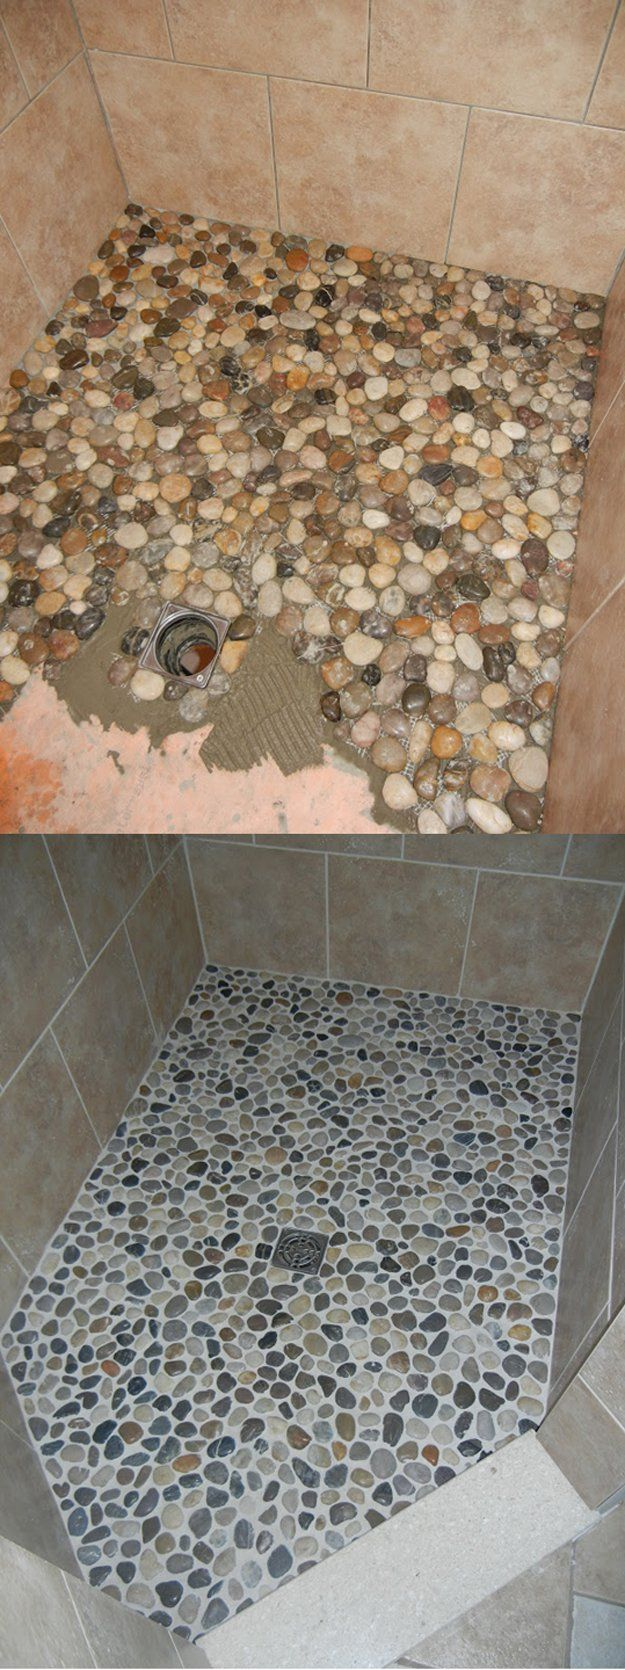 Give your shower floor an upgrade river rocks and grout | DIY Bathroom Makeover Project | http://diyready.com/incredible-diy-bathroom-makeover/